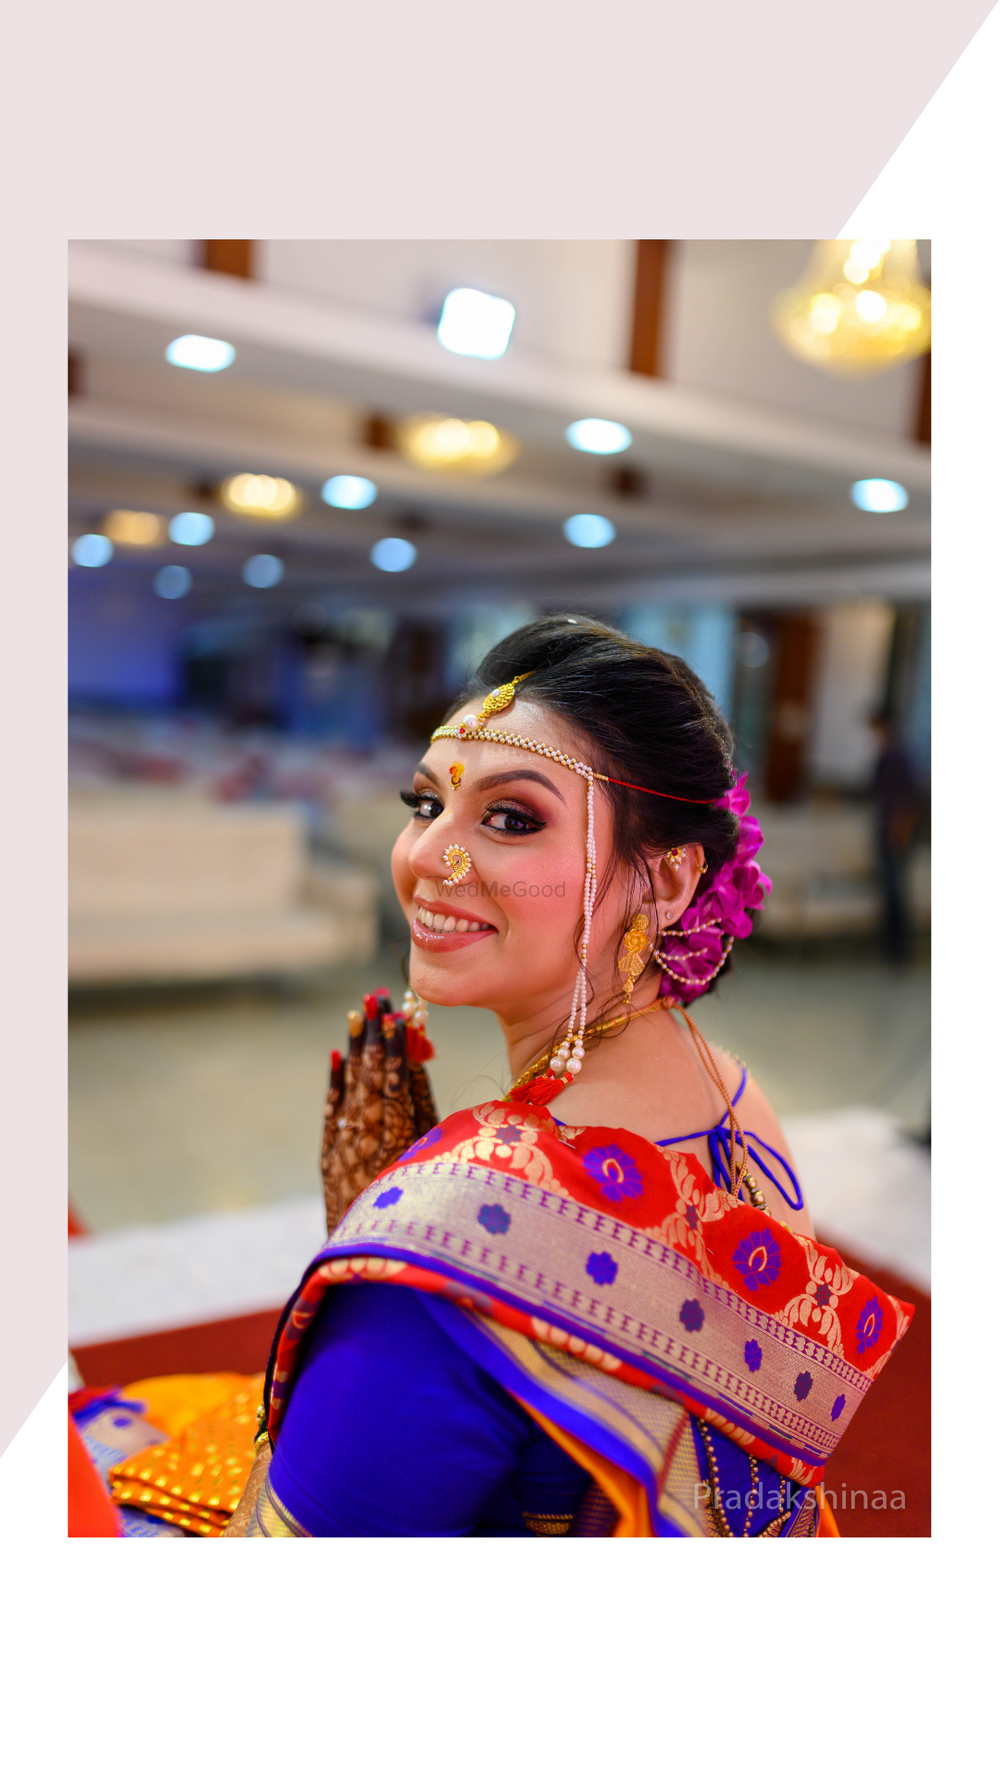 Photo From Pranali & Prathamesh | Thane | 2021 | Pradakshinaa - By Pradakshinaa